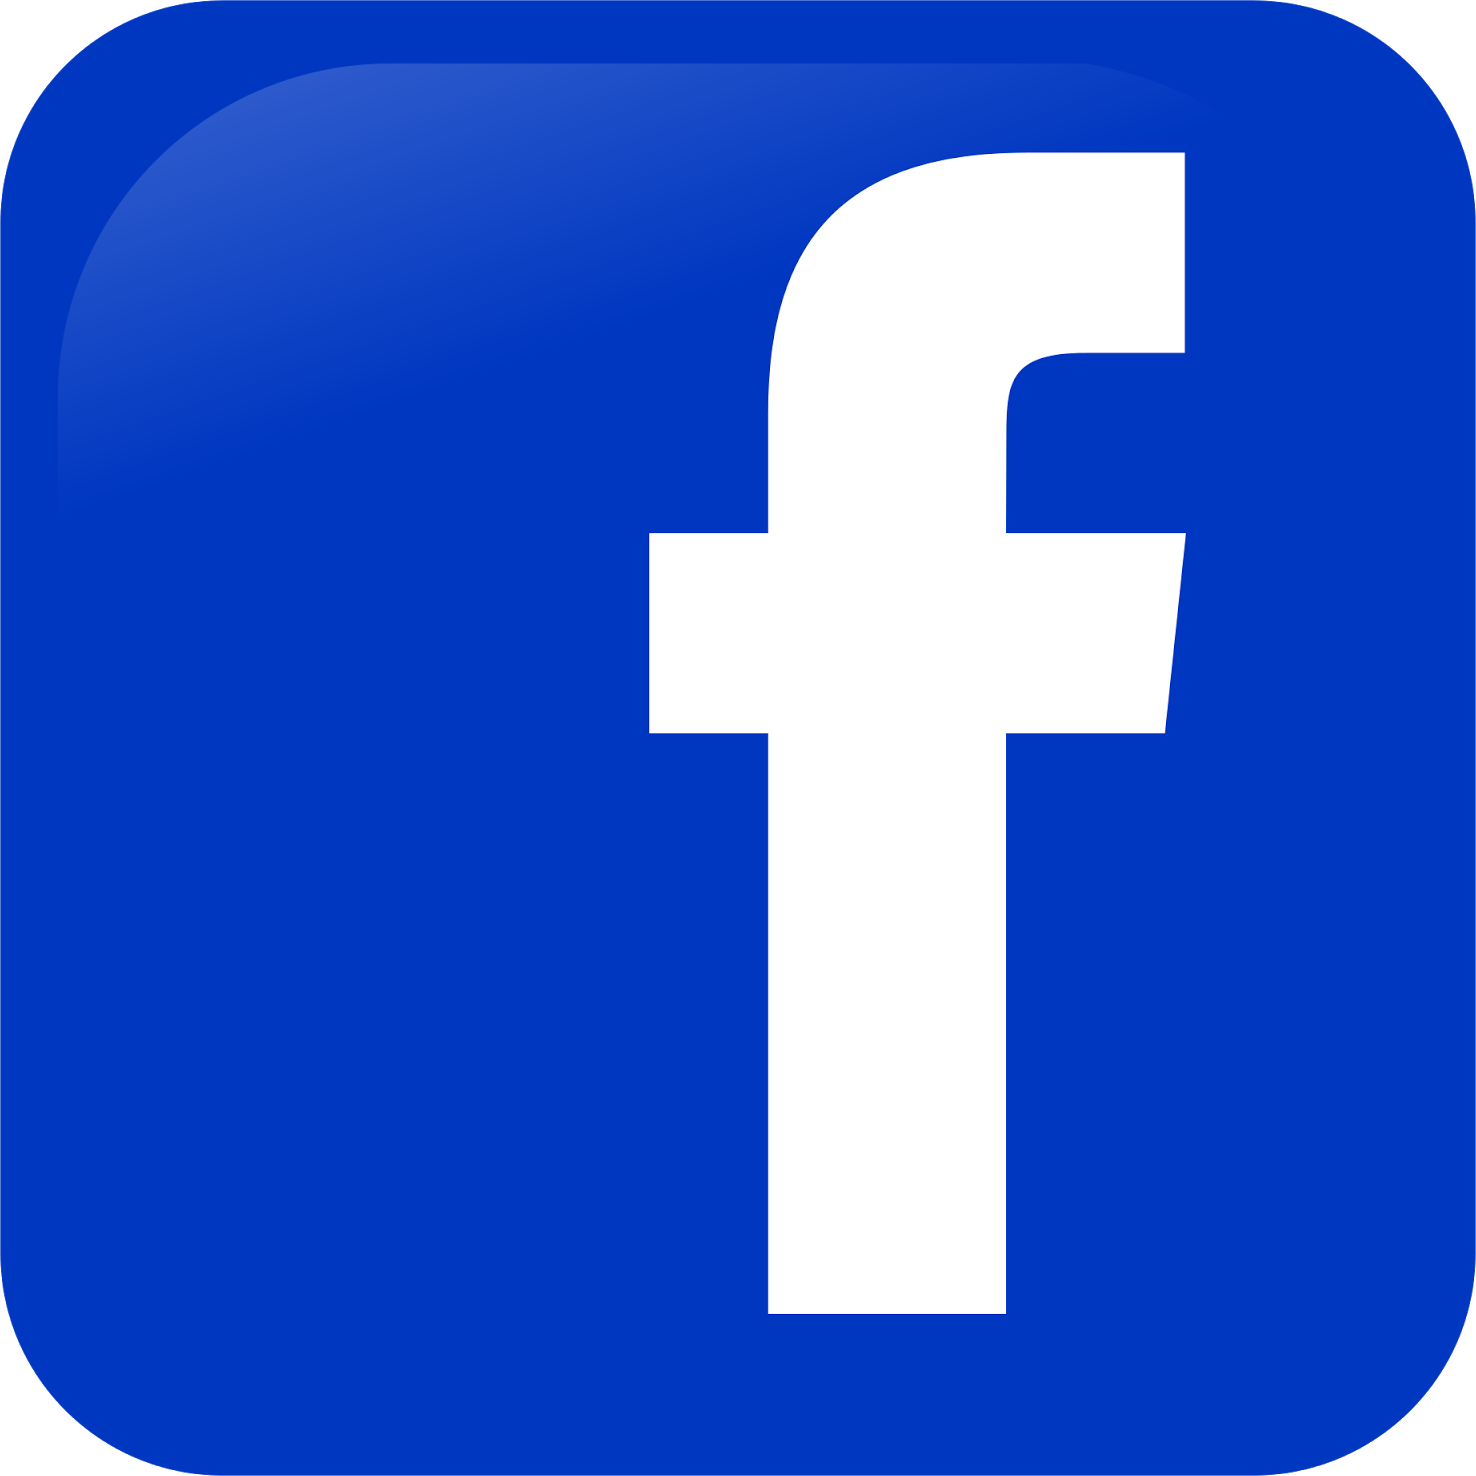 Portable Media Button Graphics Like Facebook Social PNG Image